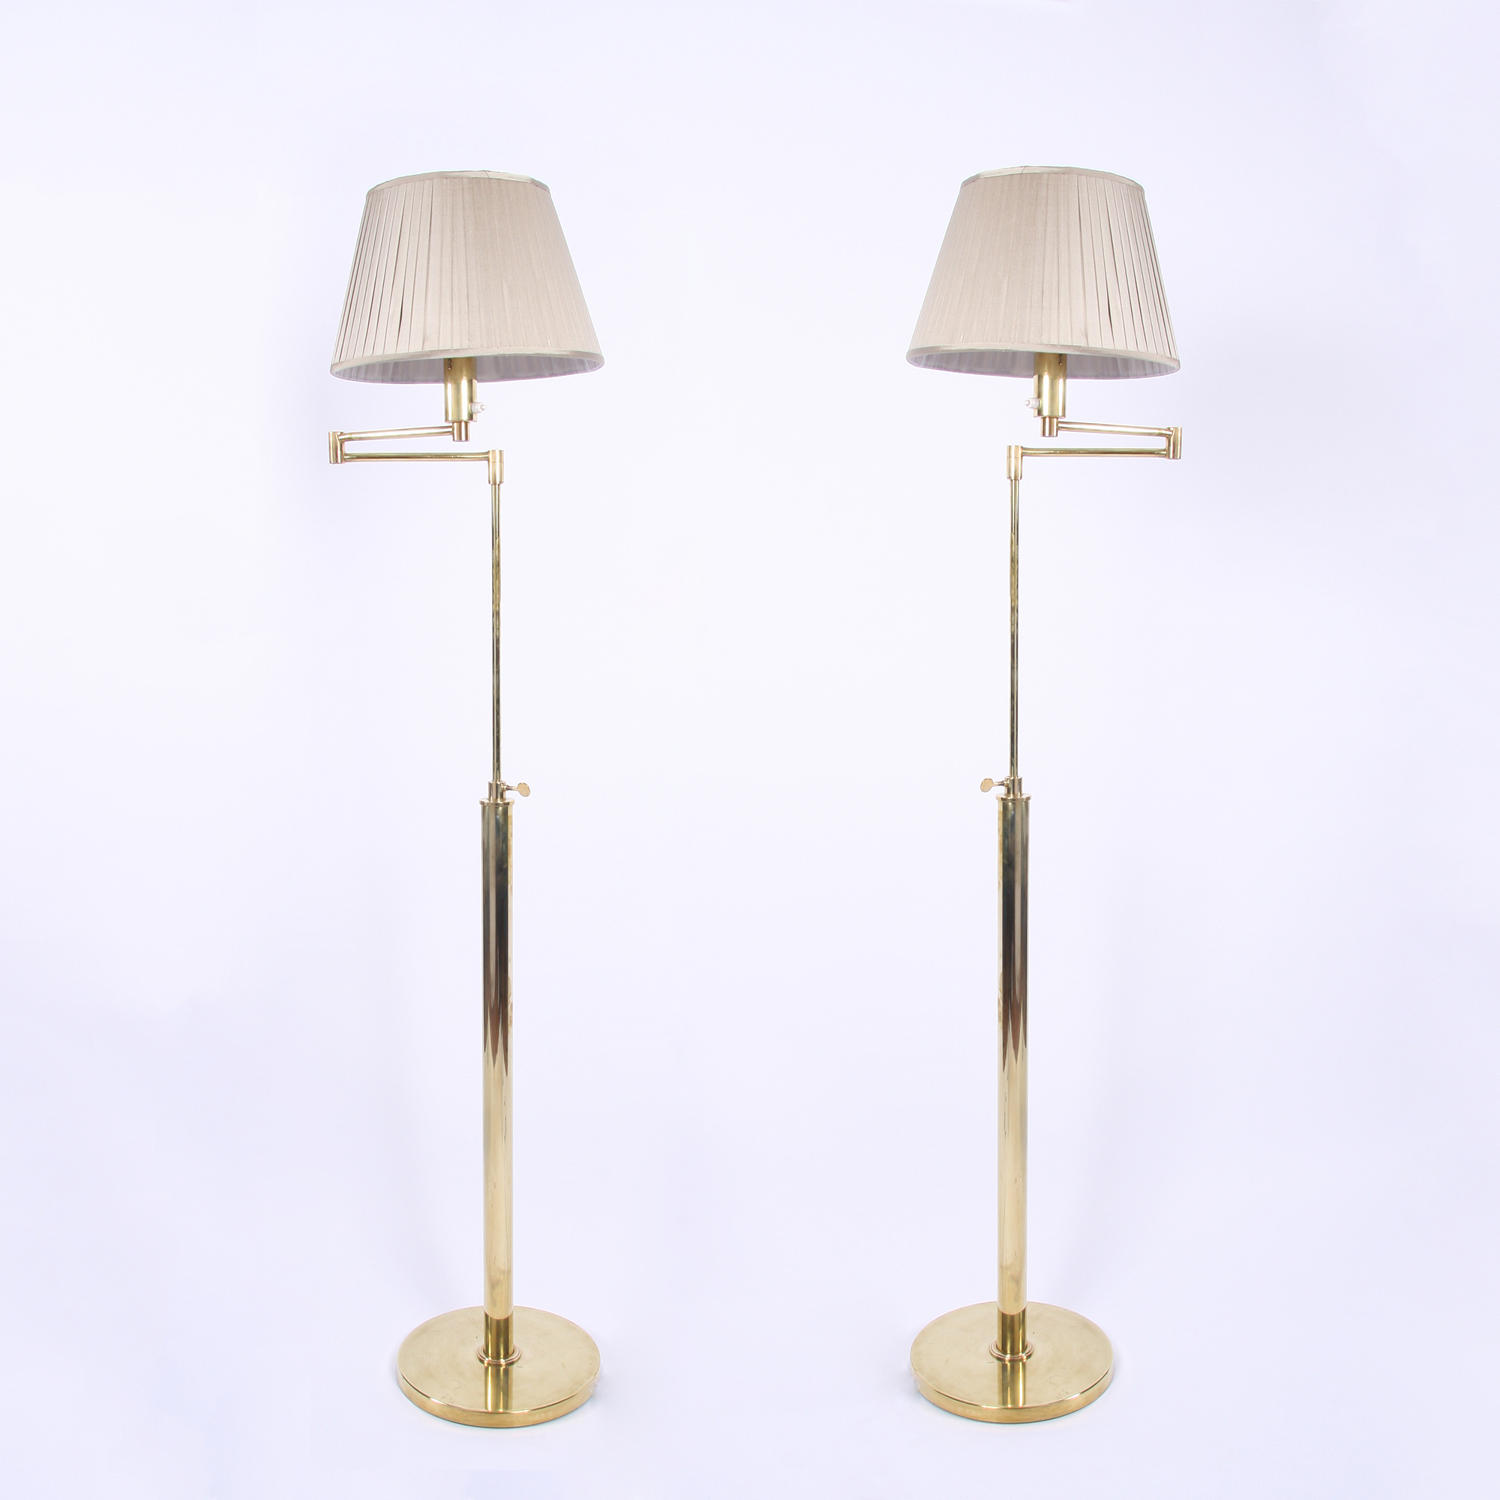 Pair of Swing Arm Floor Lamps